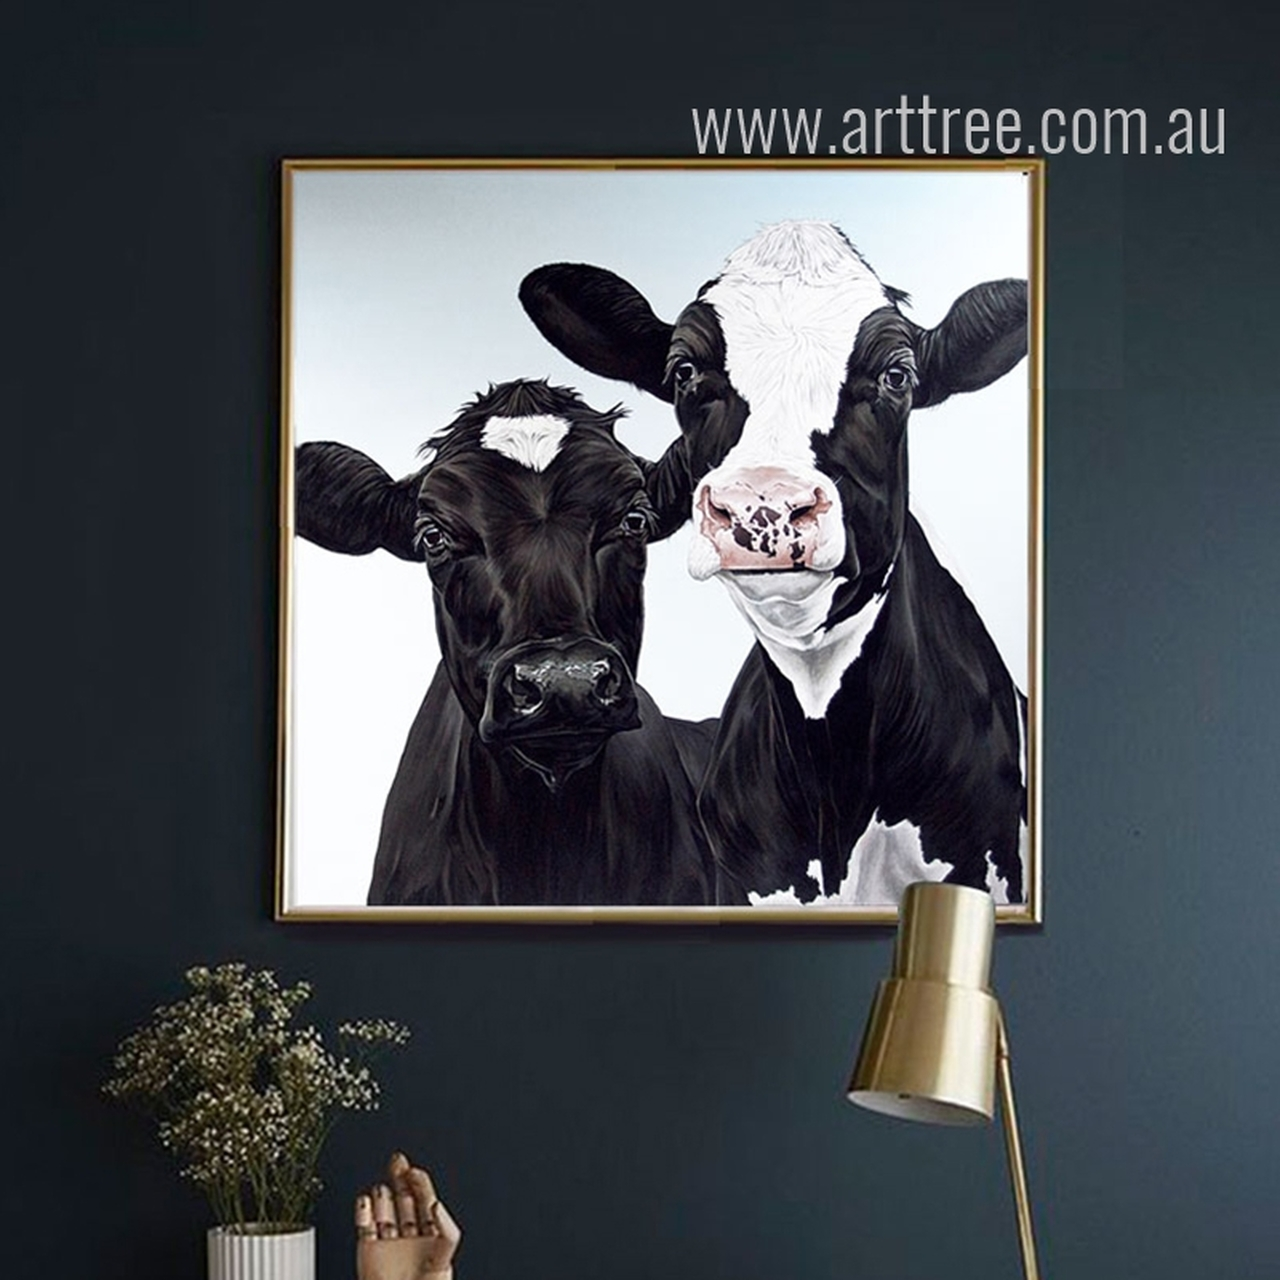 Canvas Print Digital Wall Art Black and White Cow Cattle Animal Design Unframed